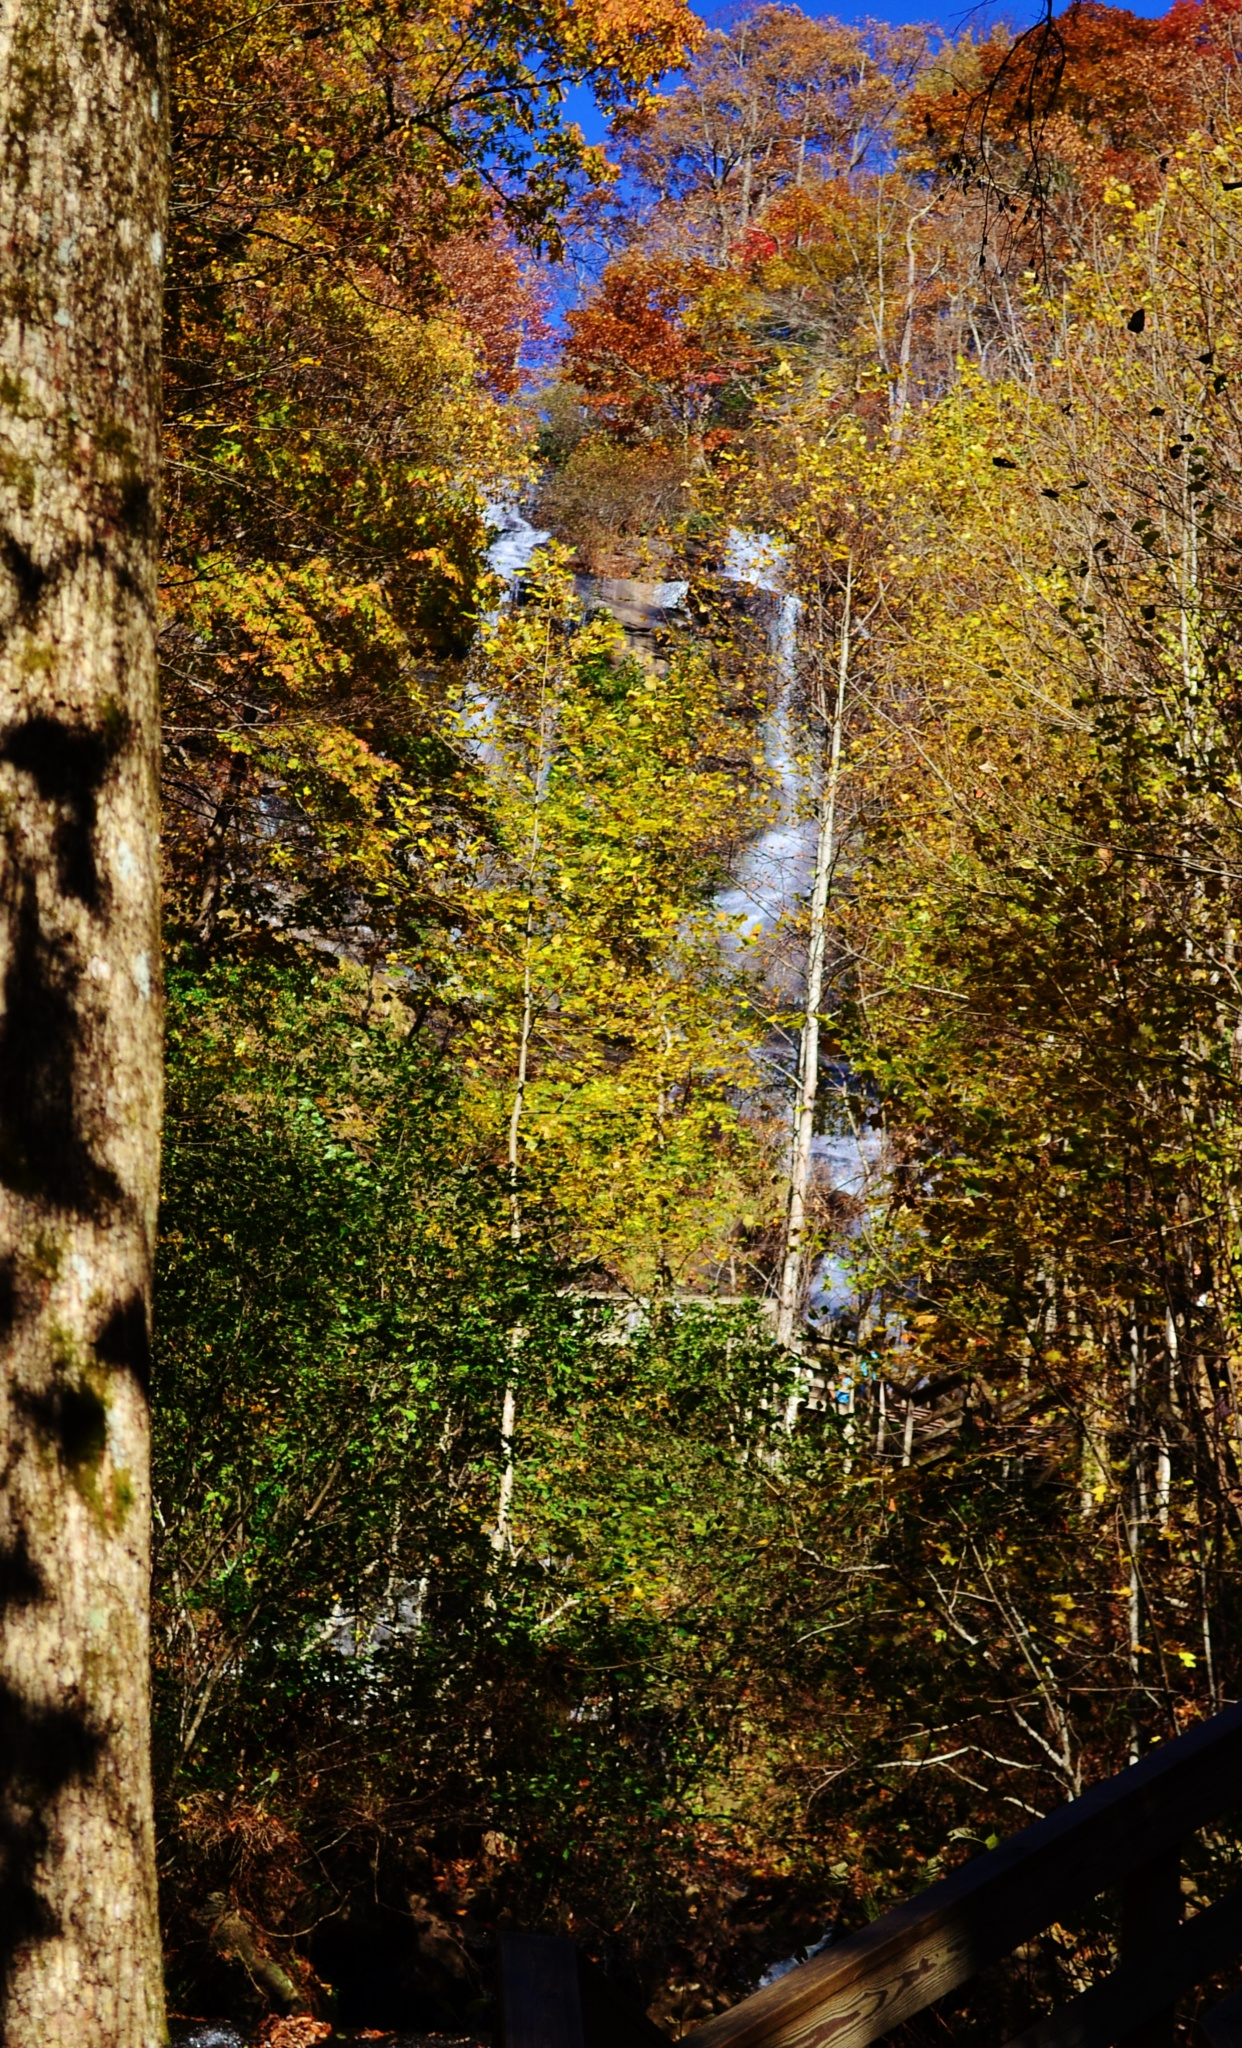 Autumn leaves and Amicalola Falls by Marcy Cox